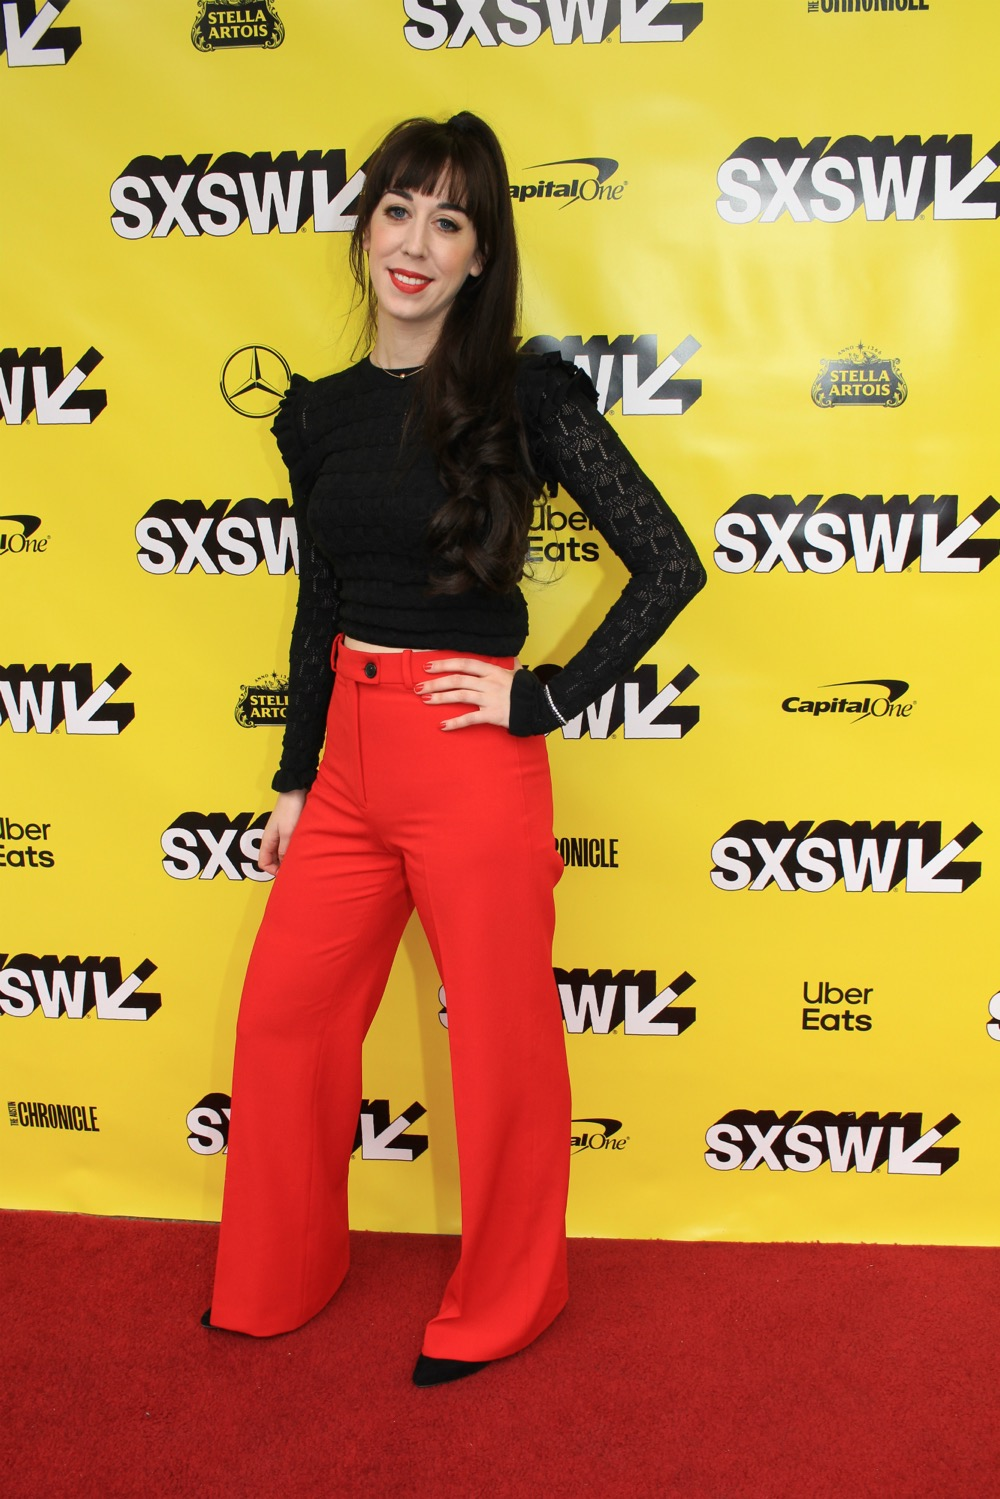 Band Together with Logic, SXSW, Red Carpet Photo, Marybeth Kern